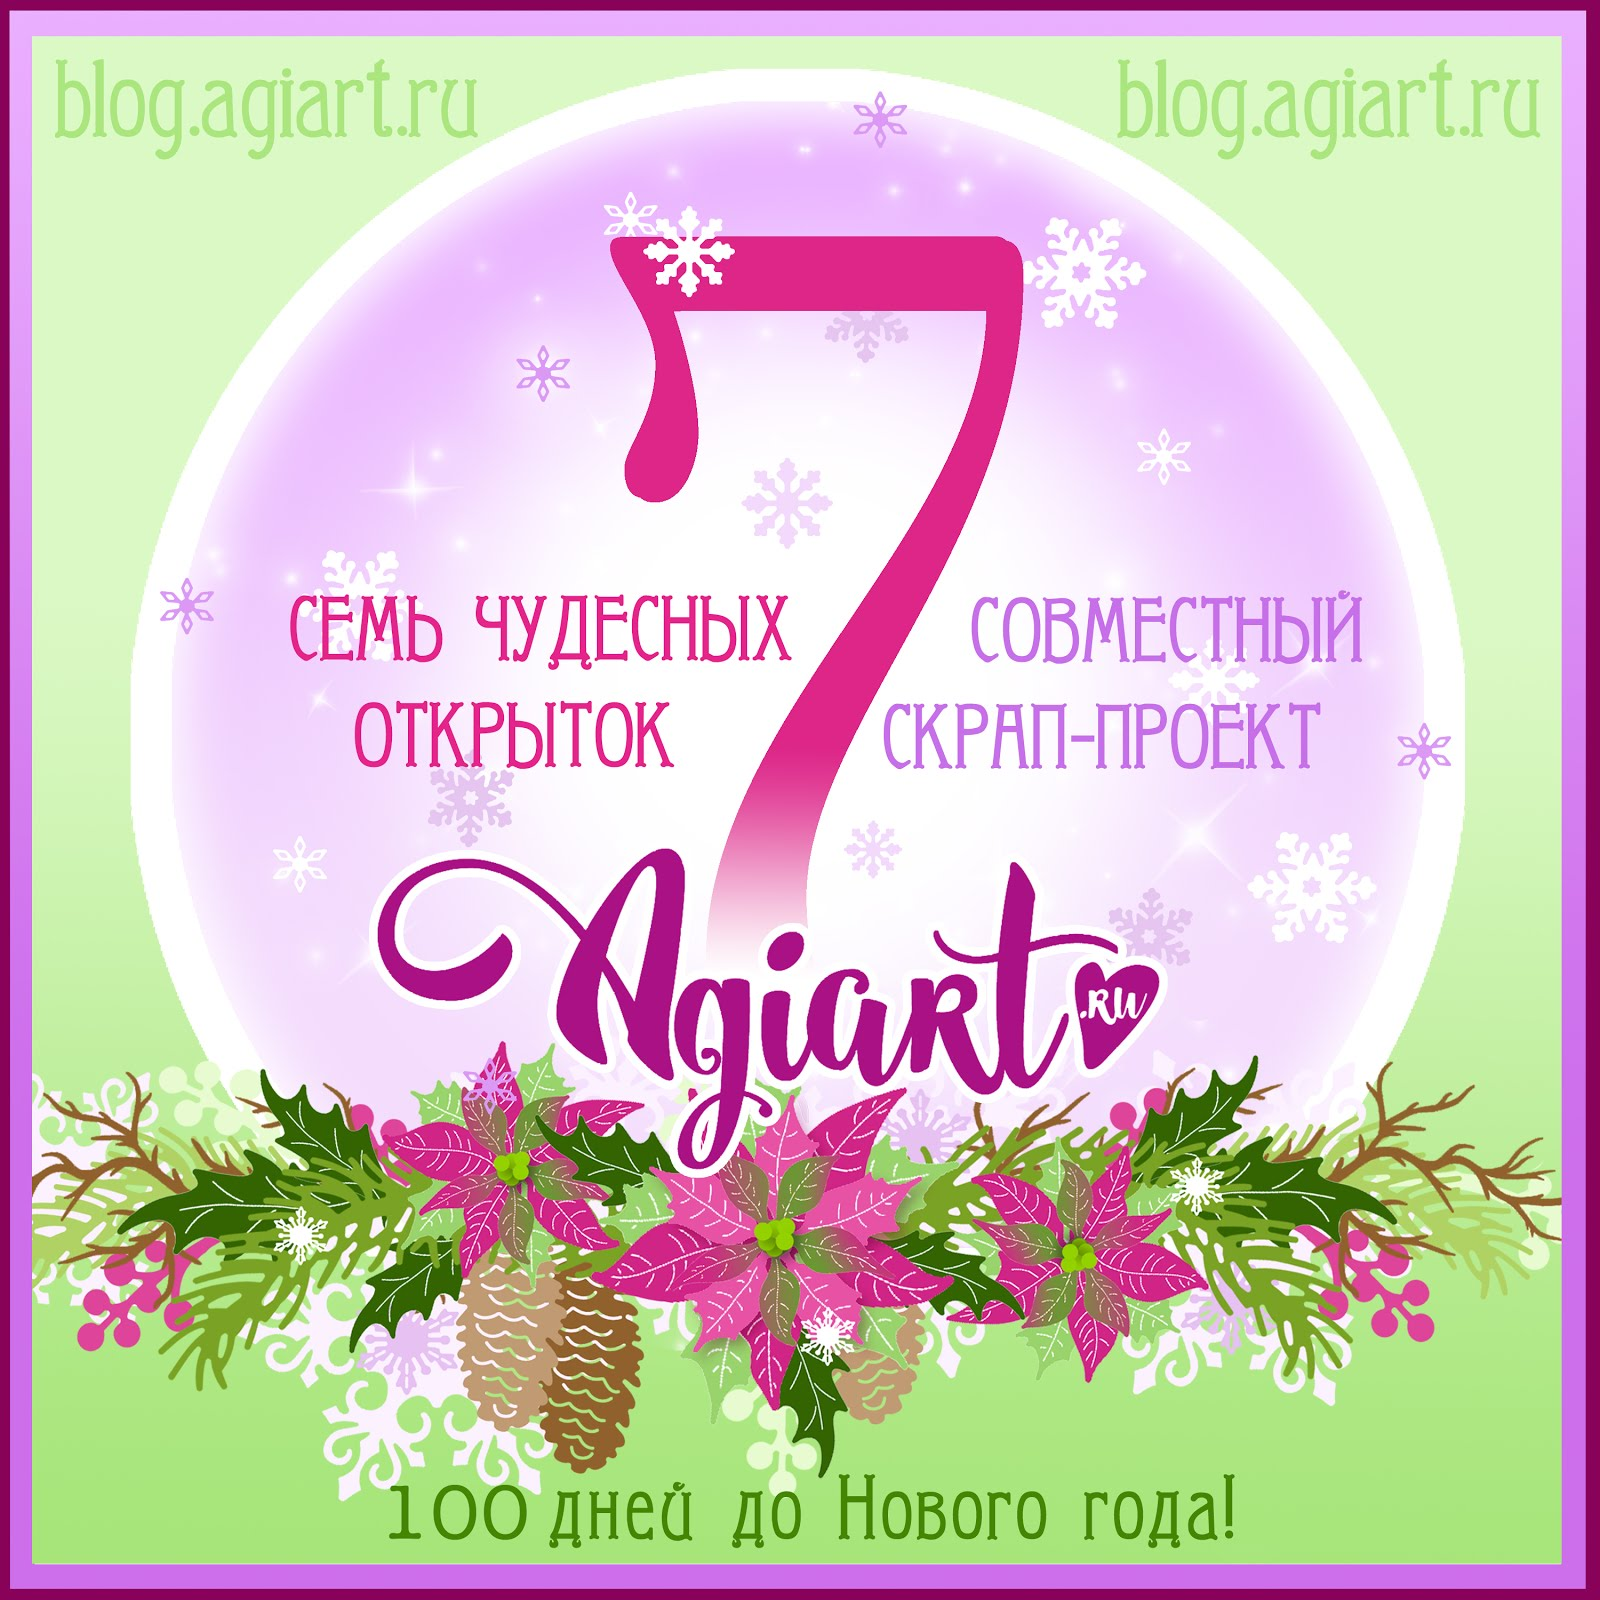 http://blog.agiart.ru/2017/09/agiart-1.html?showComment=1506321732495#c6259755233090088488